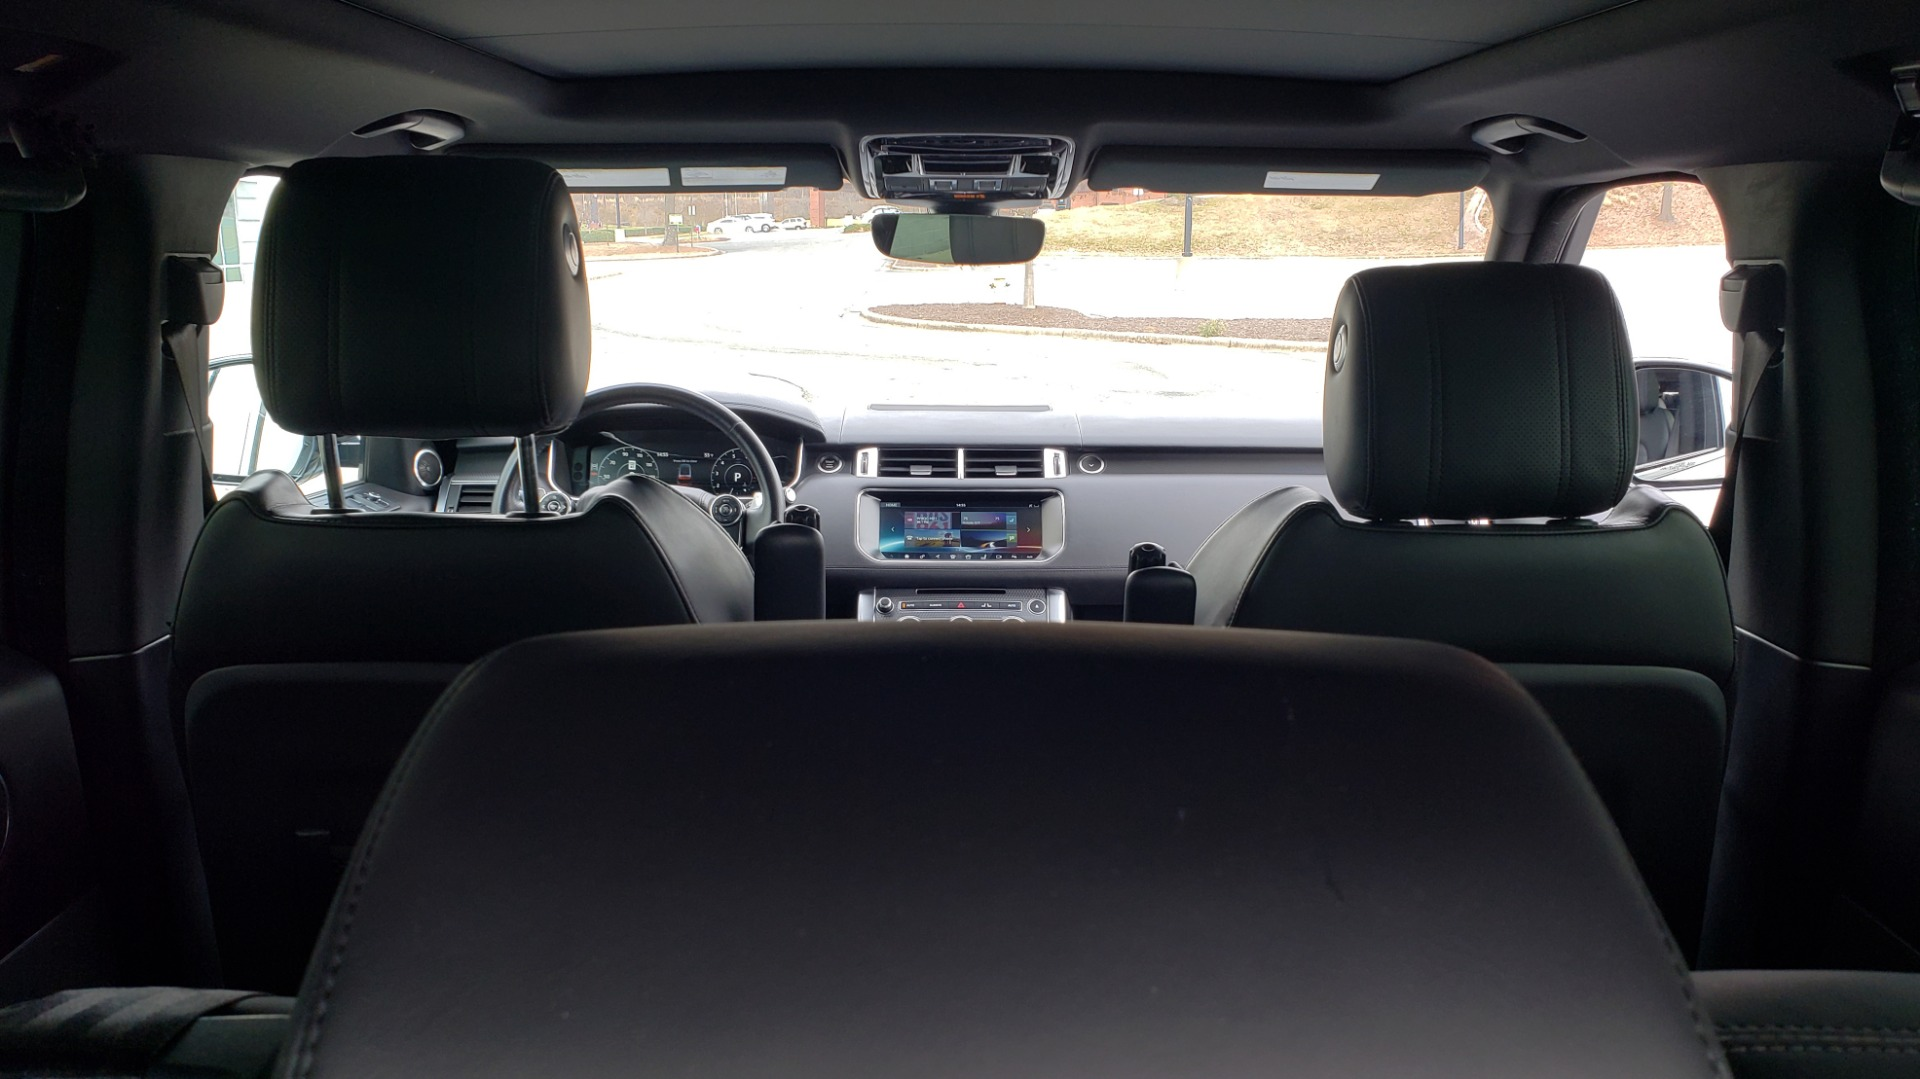 Used 2017 Land Rover RANGE ROVER SPORT HSE DYNAMIC / SC V6 / NAV / MERIDIAN / PANO-ROOF / REARVIEW for sale Sold at Formula Imports in Charlotte NC 28227 20